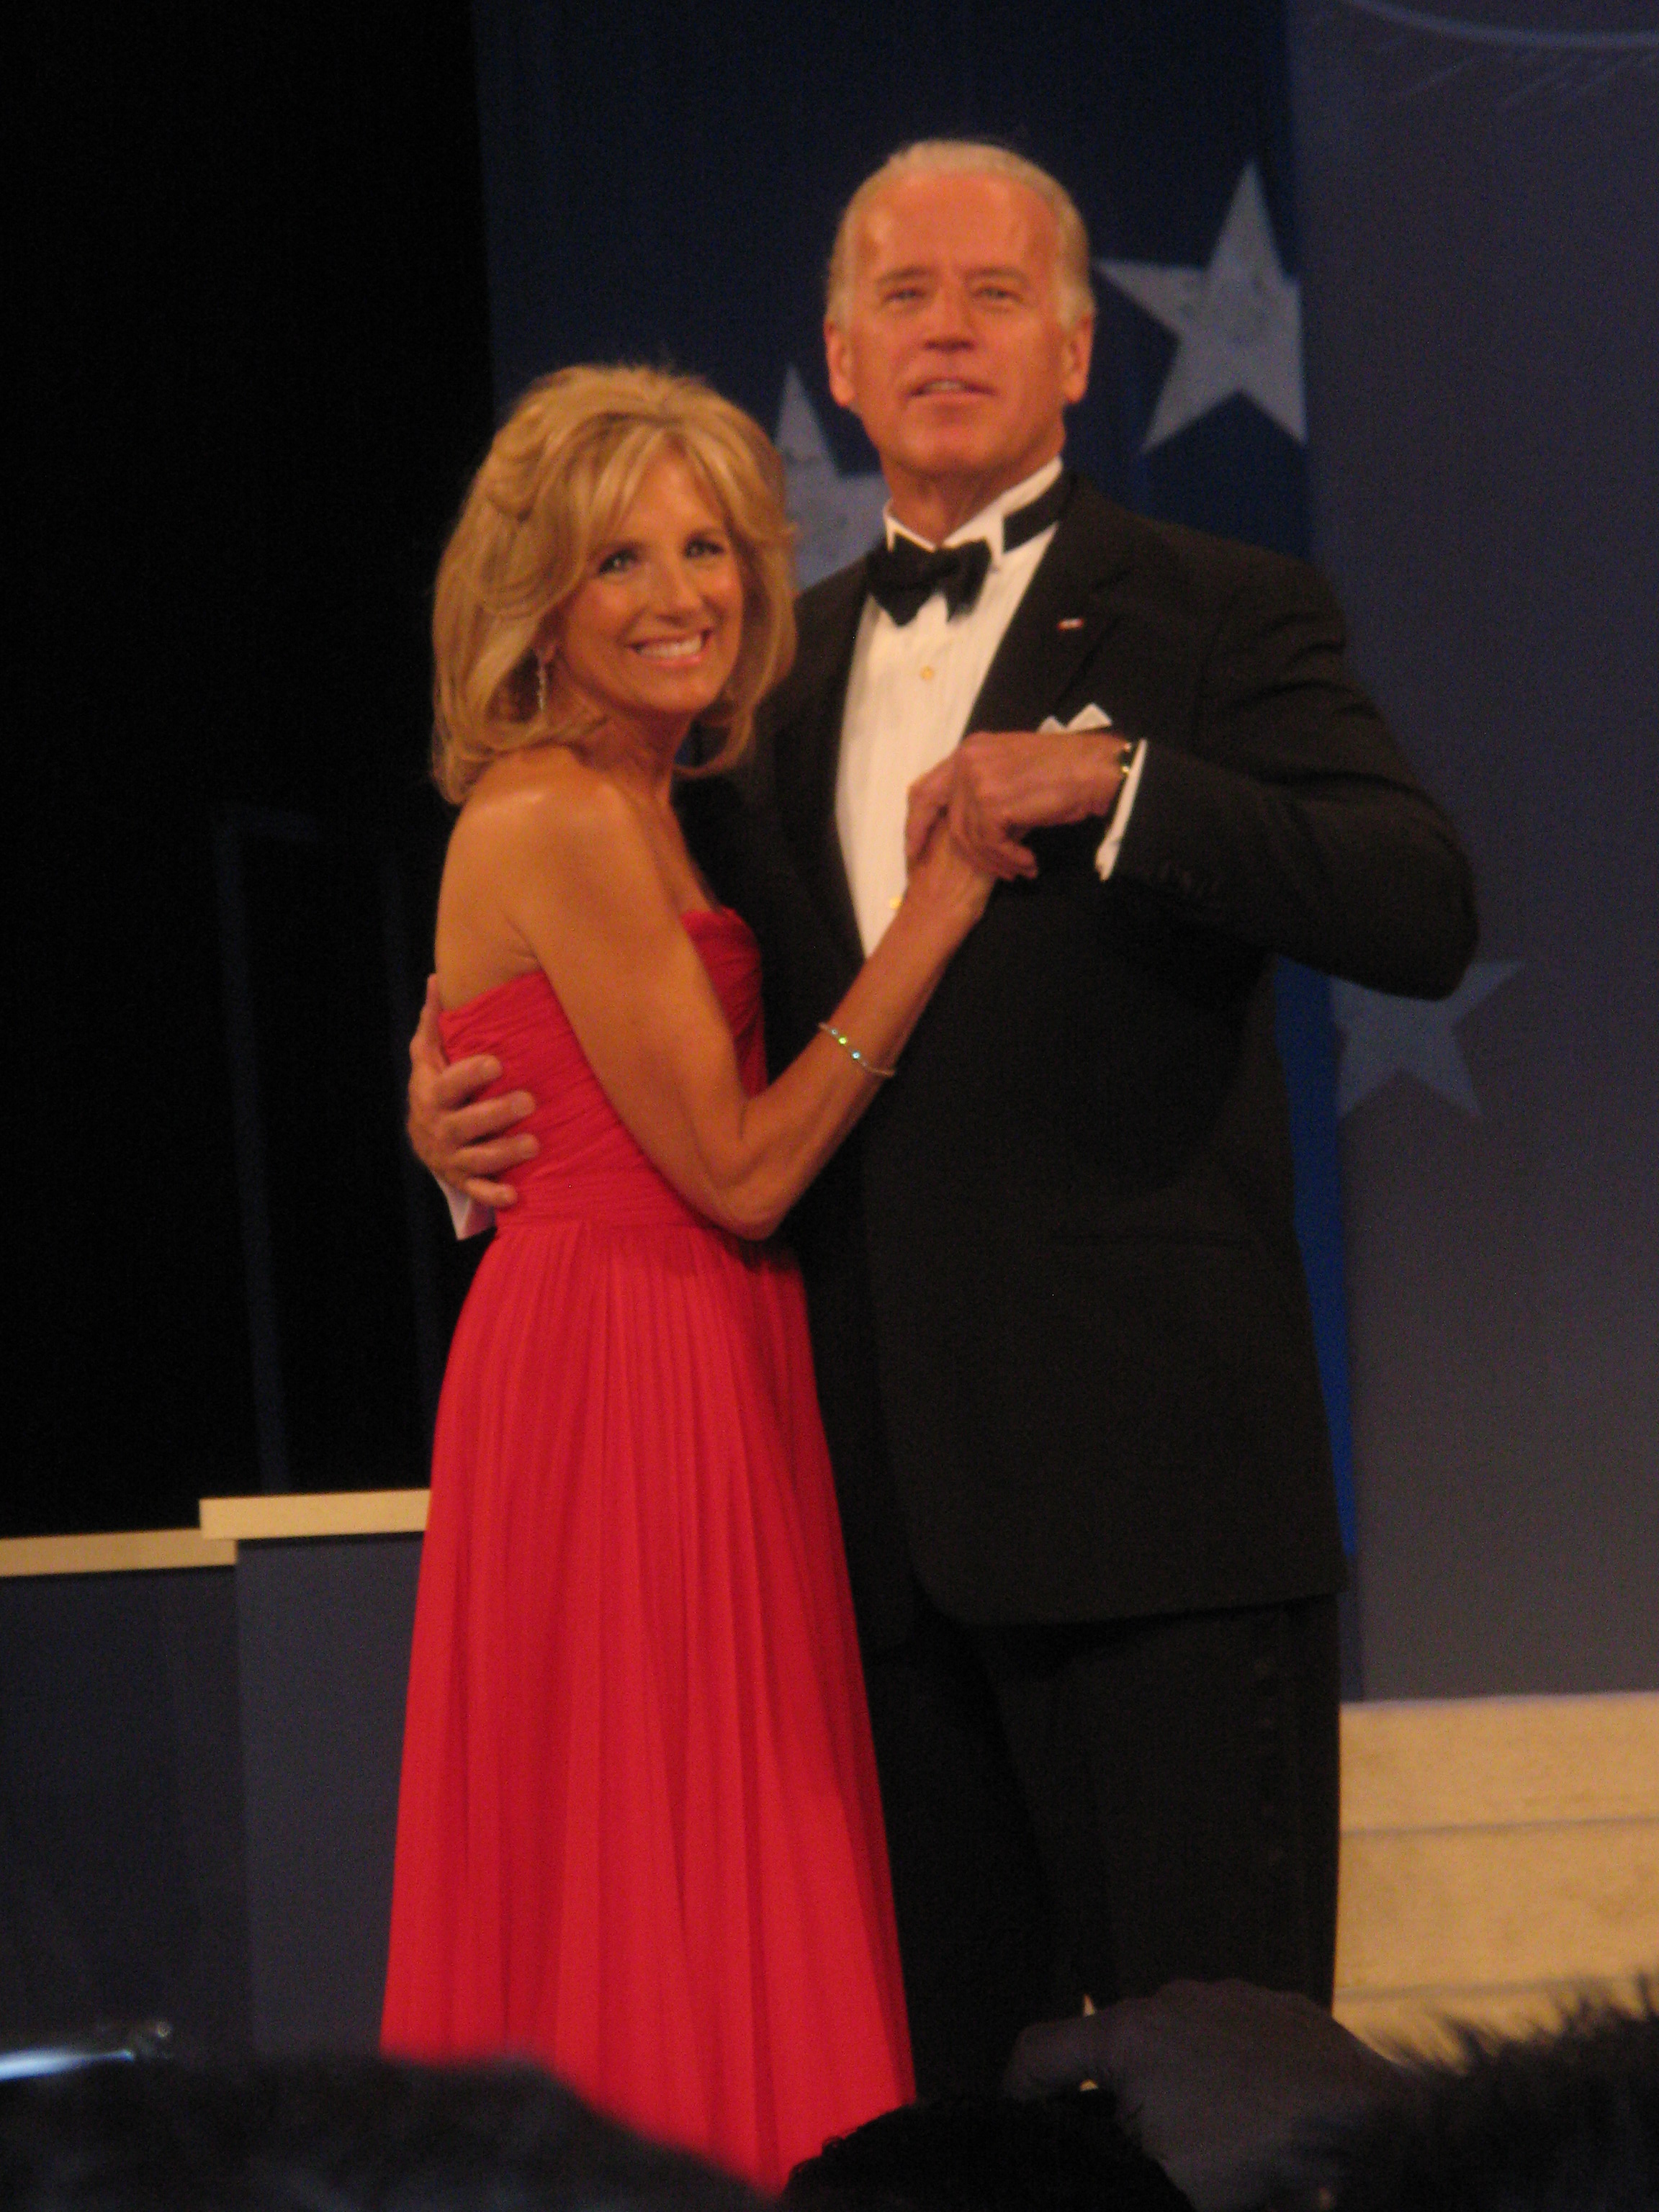 A Caucasian man in a tuxedo dances with a blonde woman in a red dress.